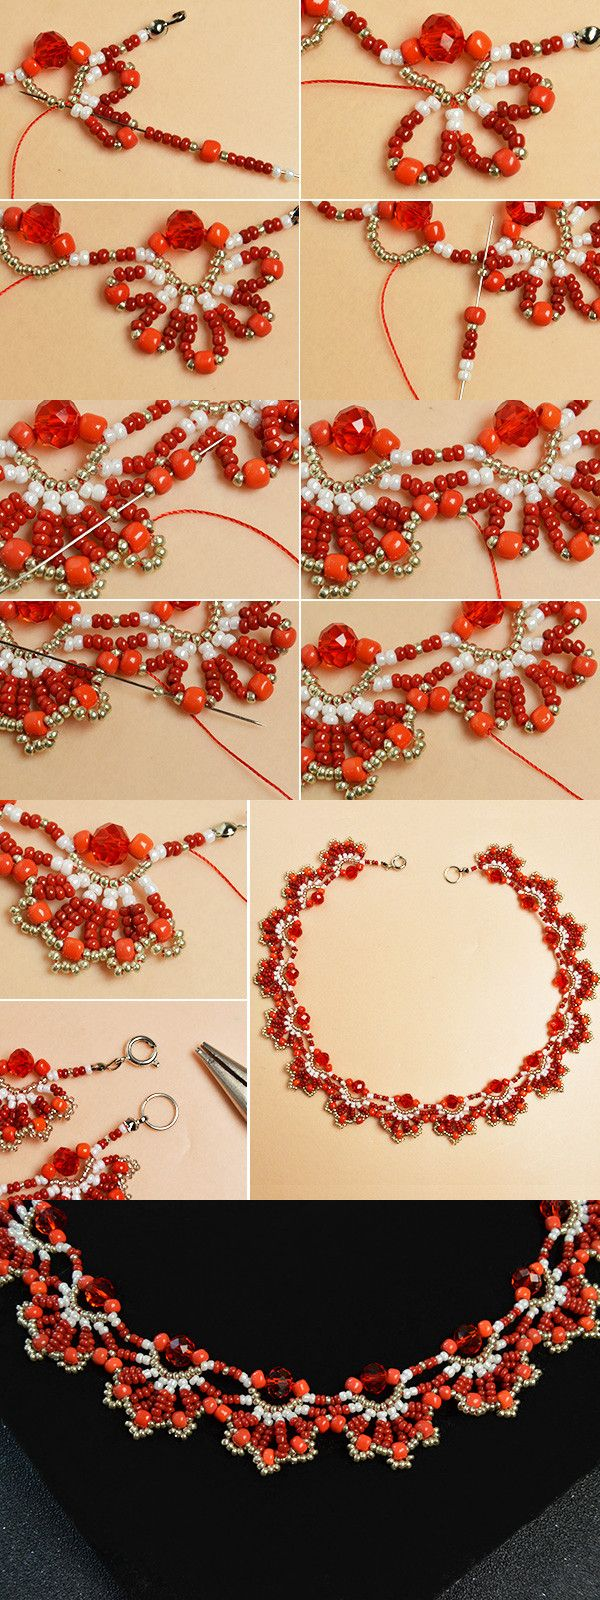 Like this red beaded necklace?The tutorial will be published by LC.Pandahall.com soon.